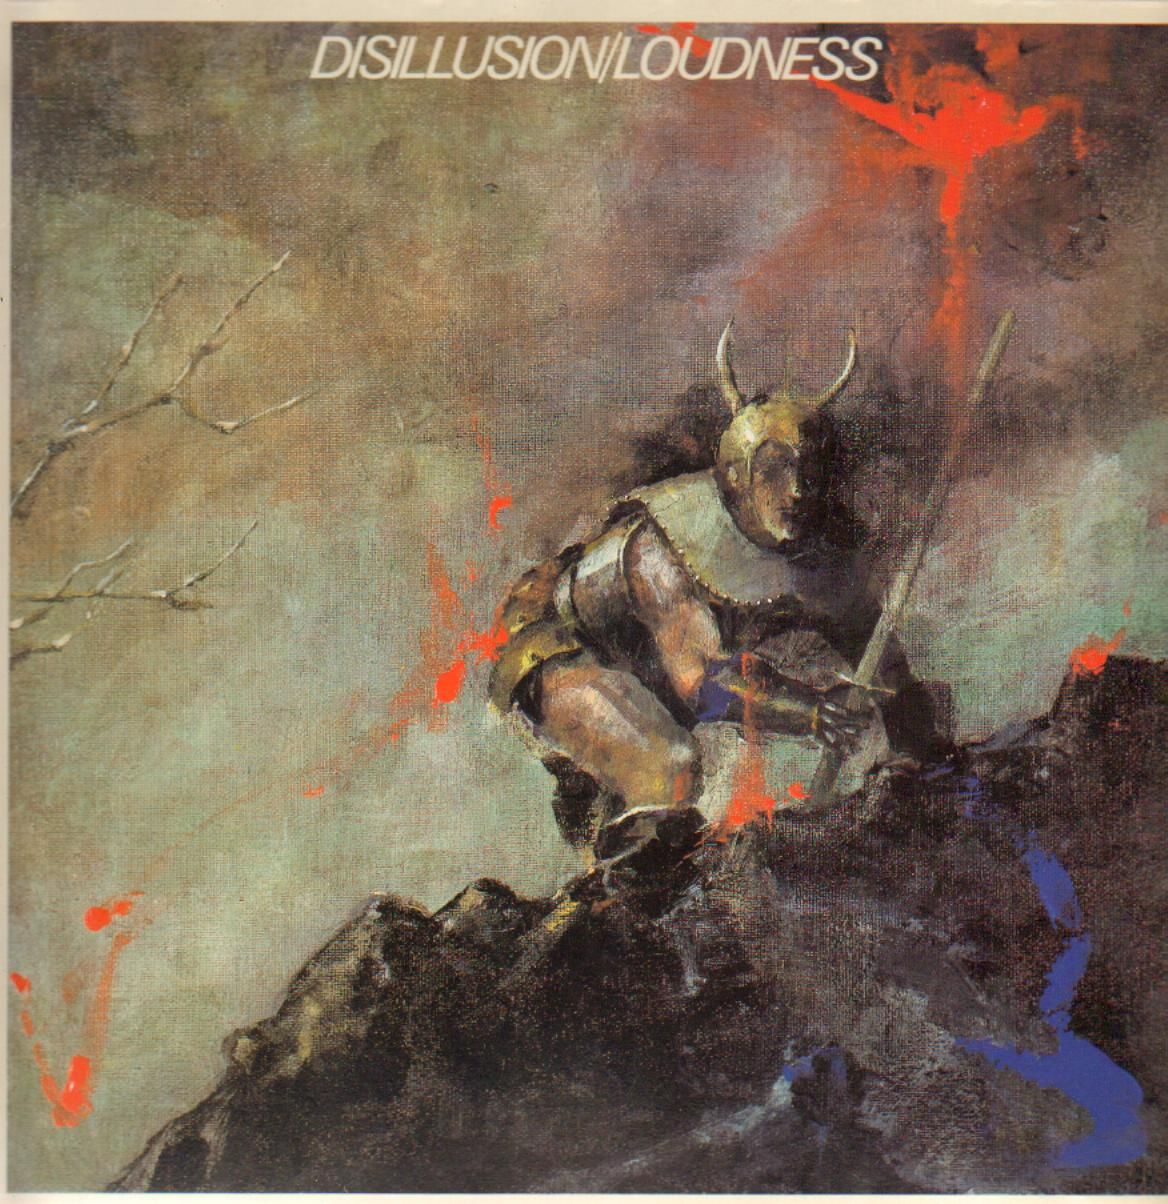 Loudness - Disillusion - 1984